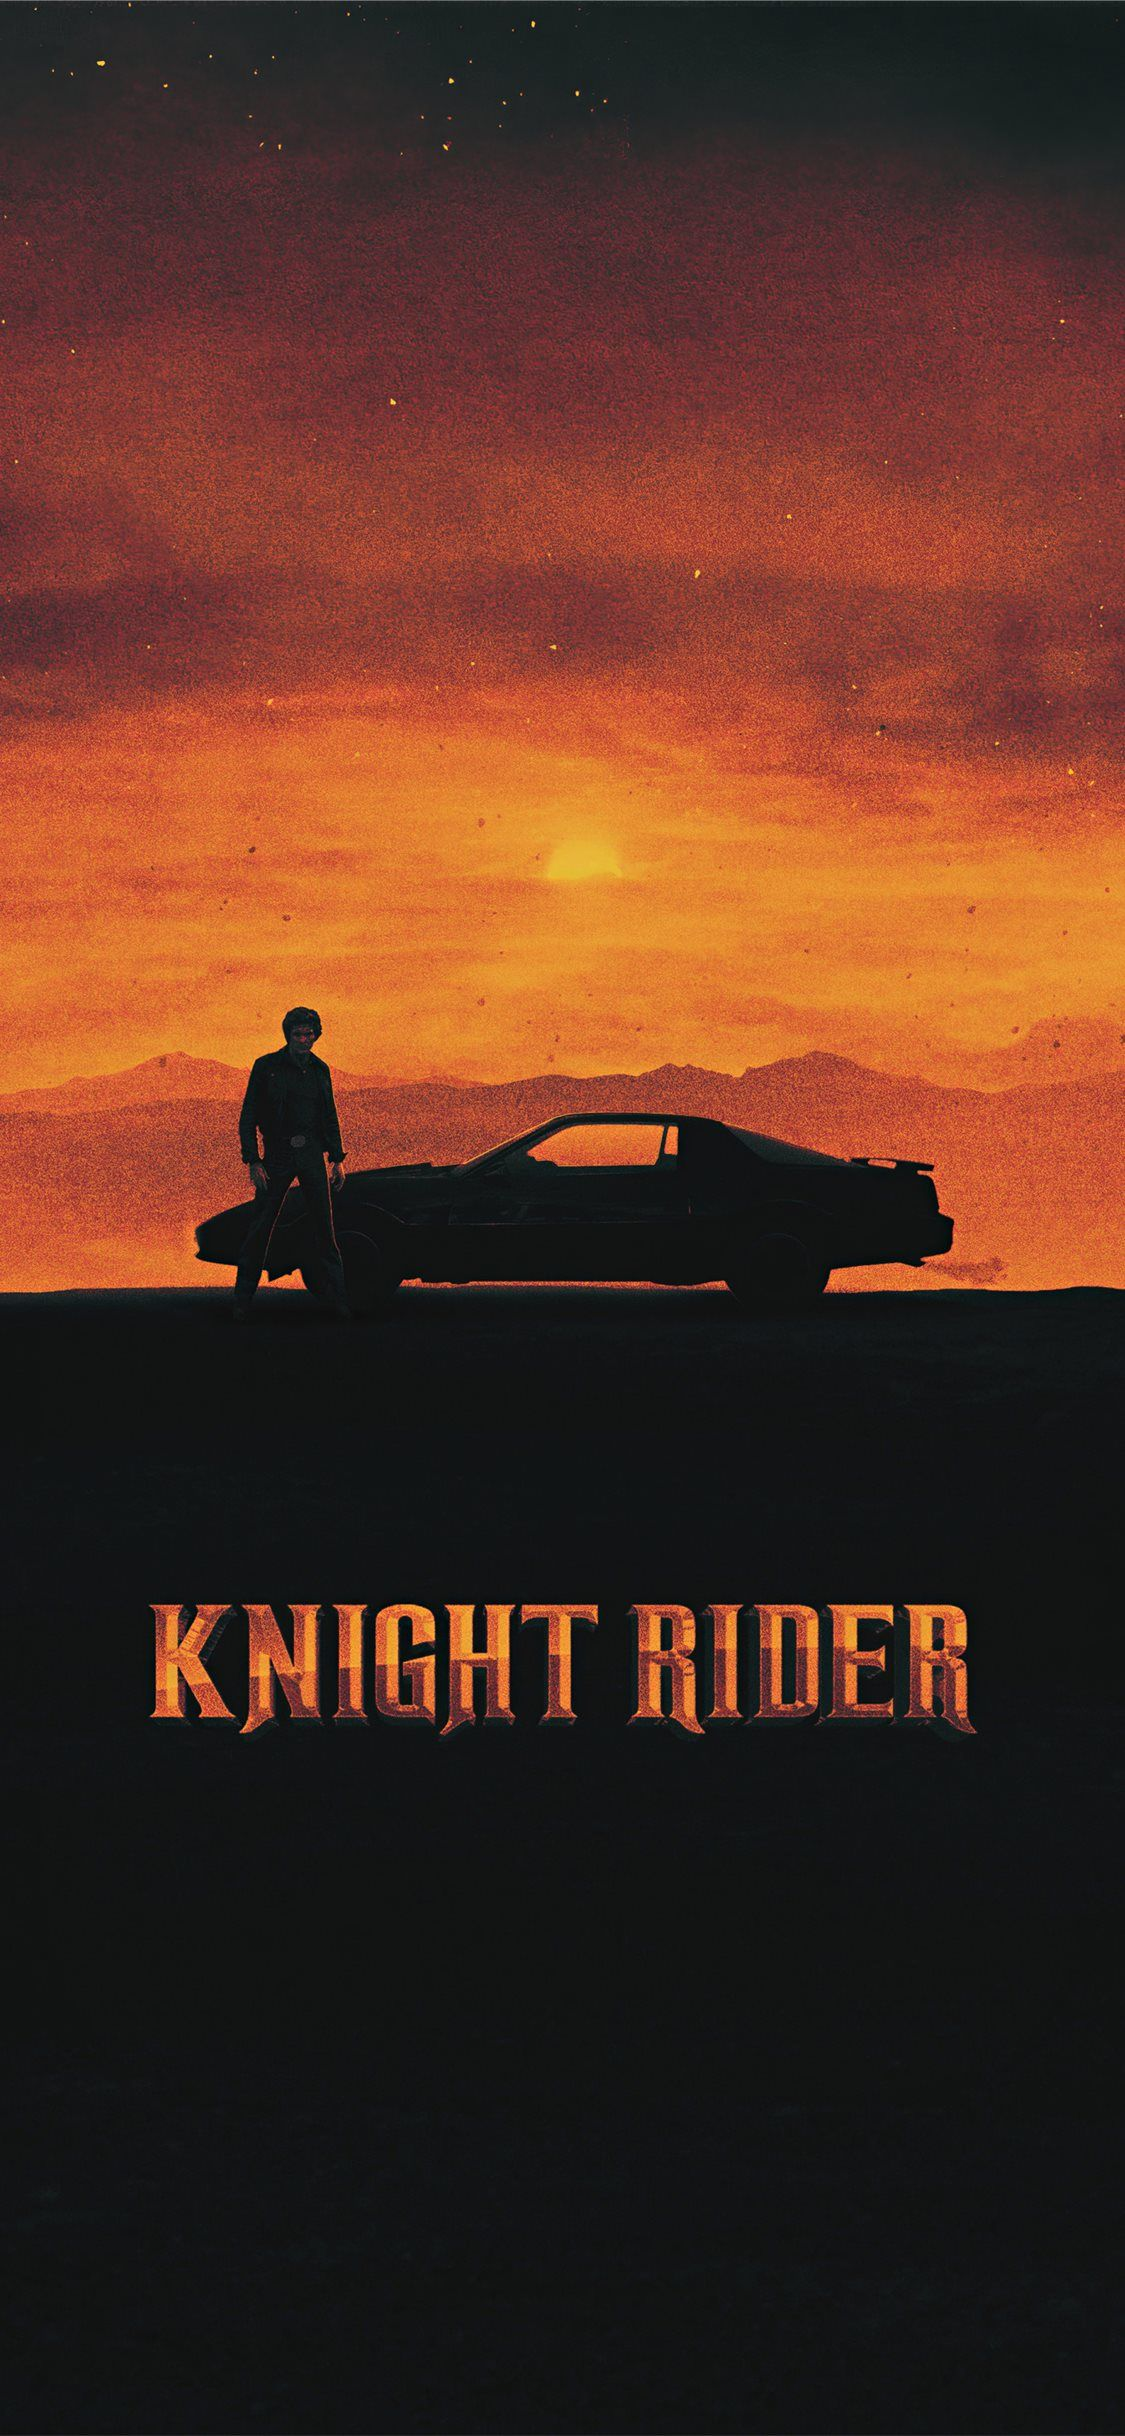 Free download the knight rider 1982 movie poster wallpaper